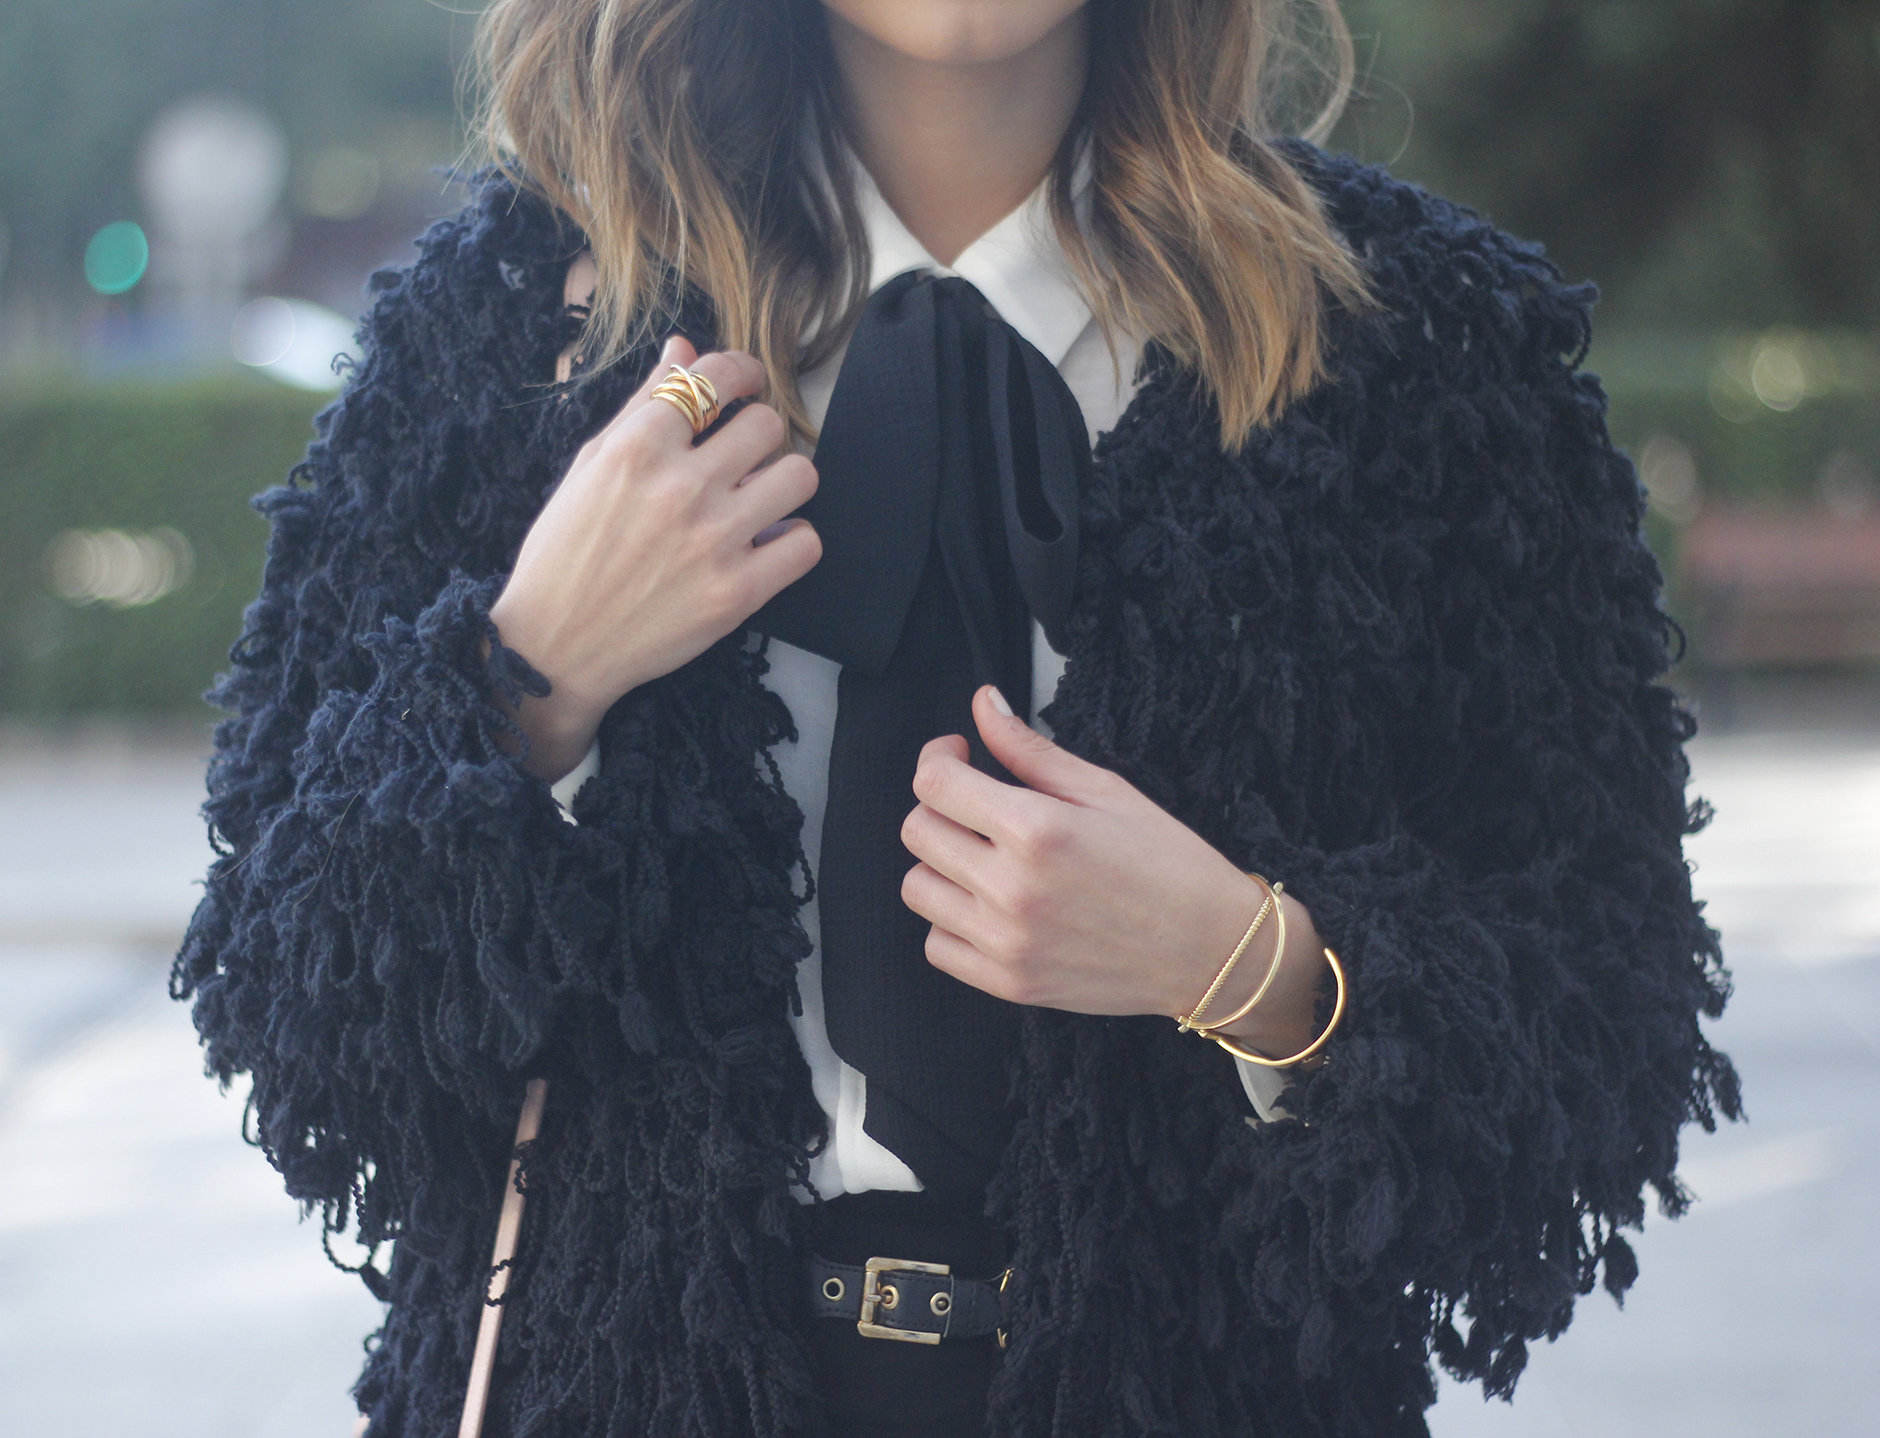 black jacket shirt with black bow coach pink bag heels outfit12